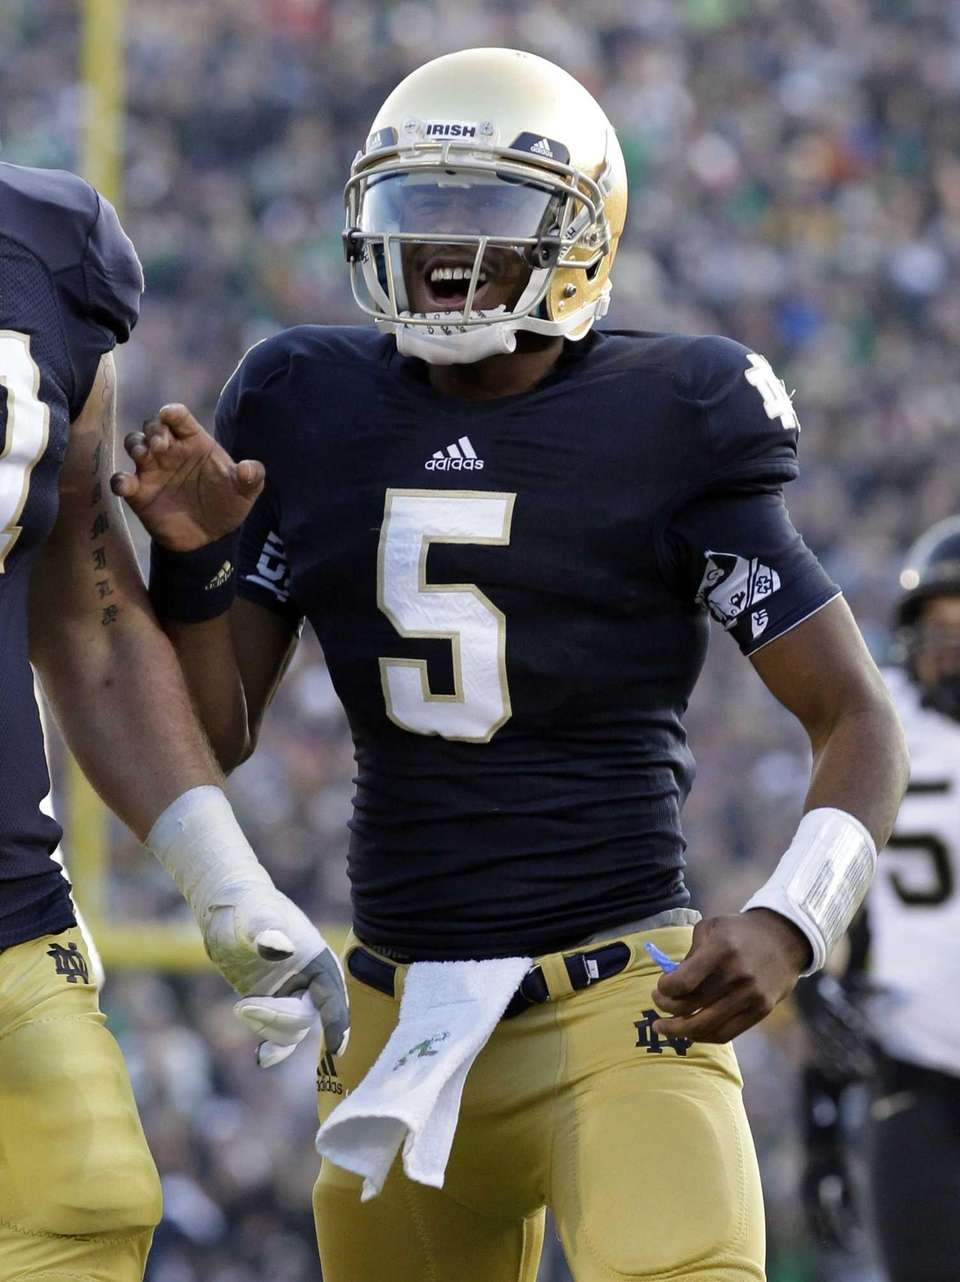 Notre Dame quarterback Everett Golson reacts after throwing